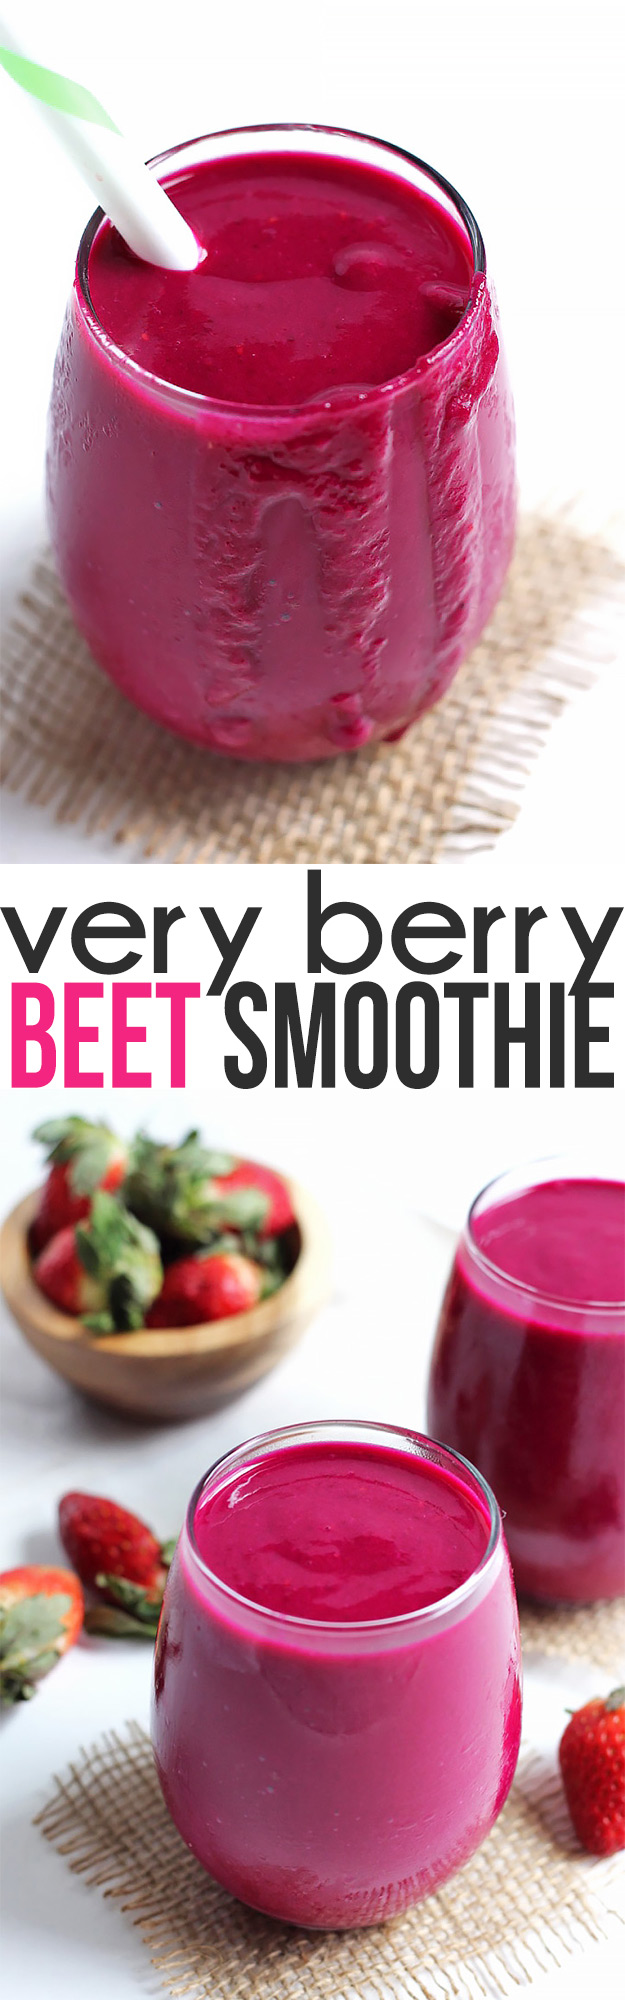 If you find it hard to get your veggies in, you need this Very Berry Beet Smoothie! It's perfect for a super nutritious breakfast or snack.